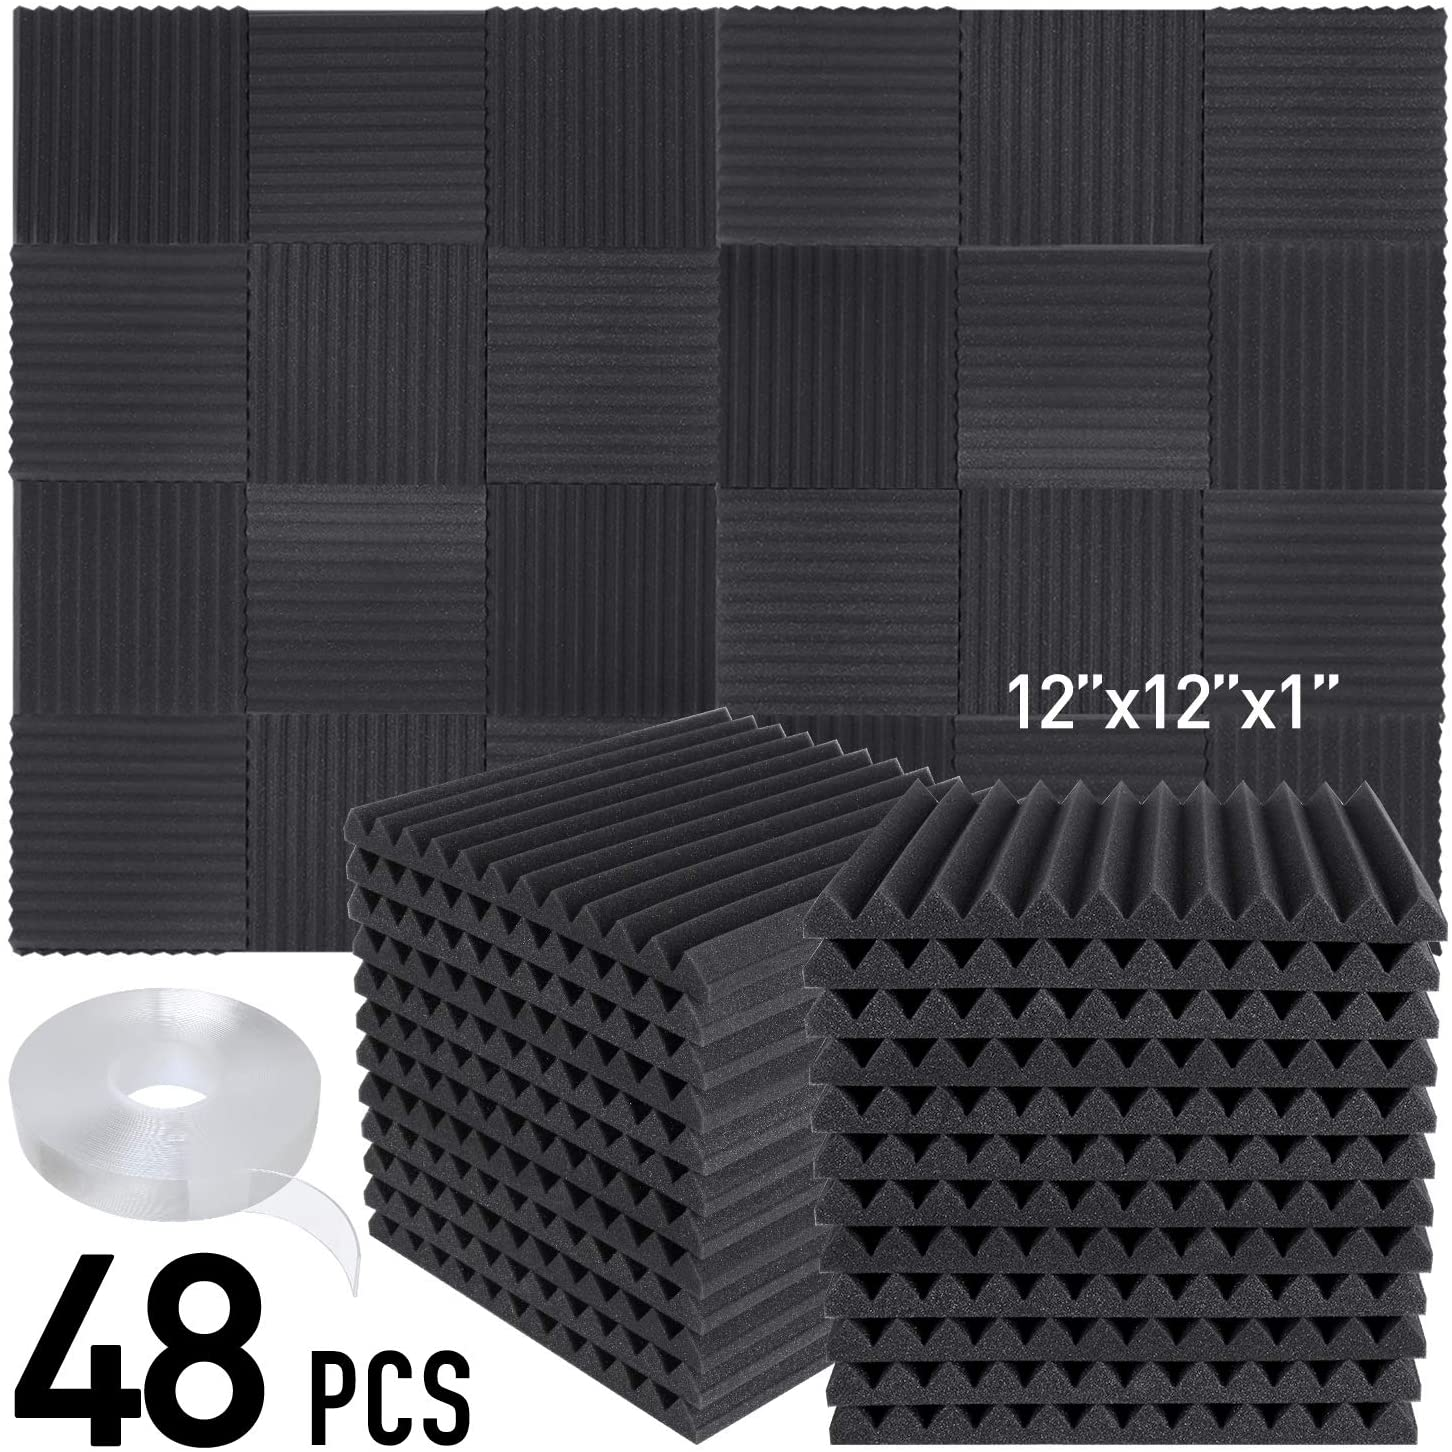 Focusound 48 Packs Acoustic Foam Panels Wedge Soundproof Studio Wall Tiles Sound Absorbing with Double Side Adhesive Tape, 1